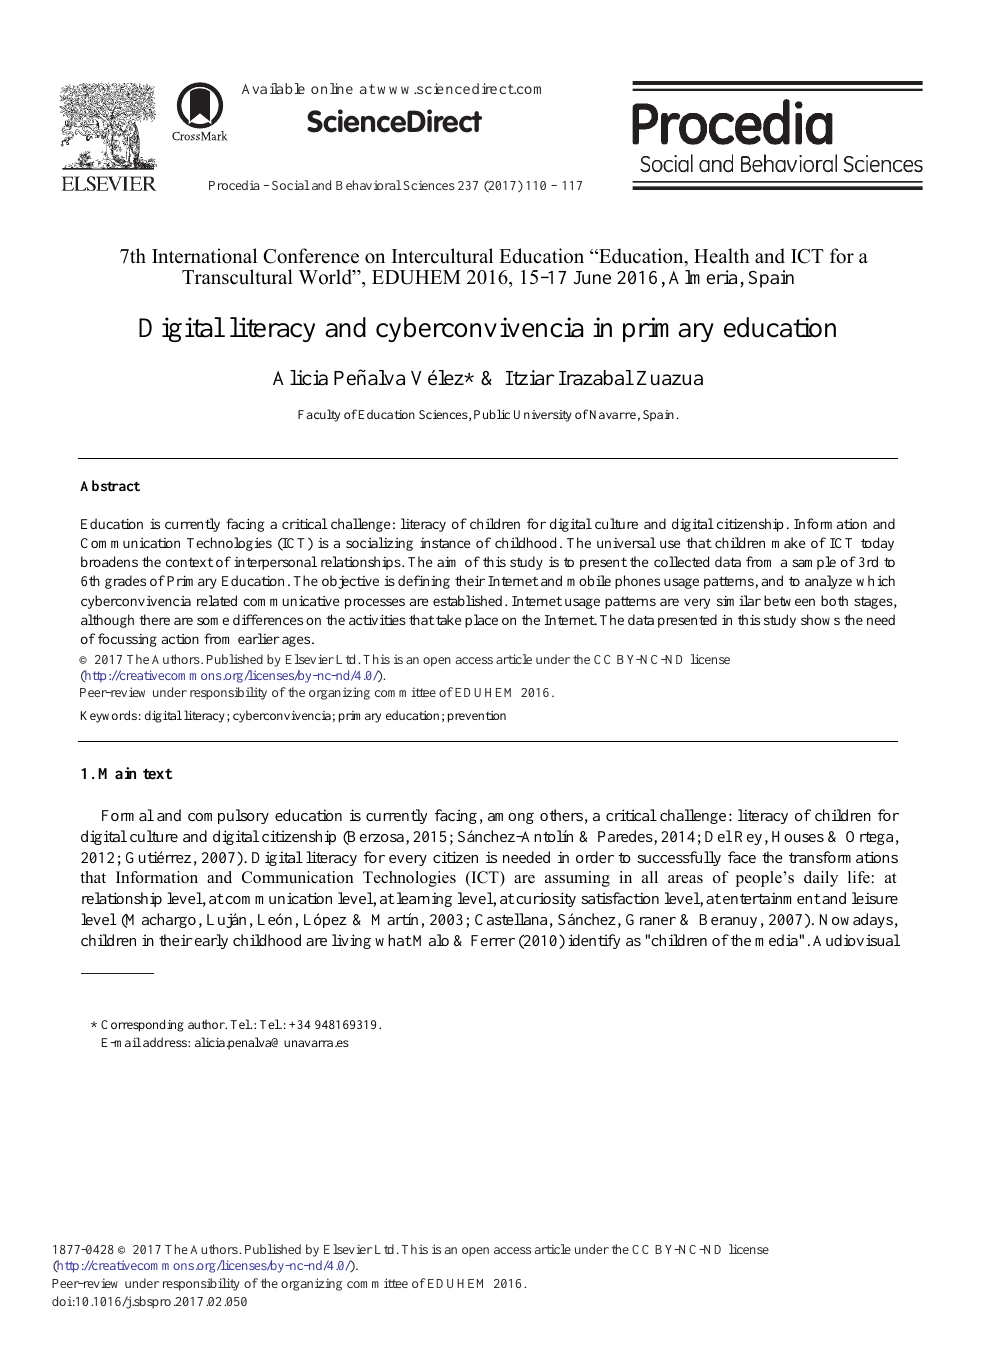 Digital Literacy and Cyberconvivencia in Primary Education